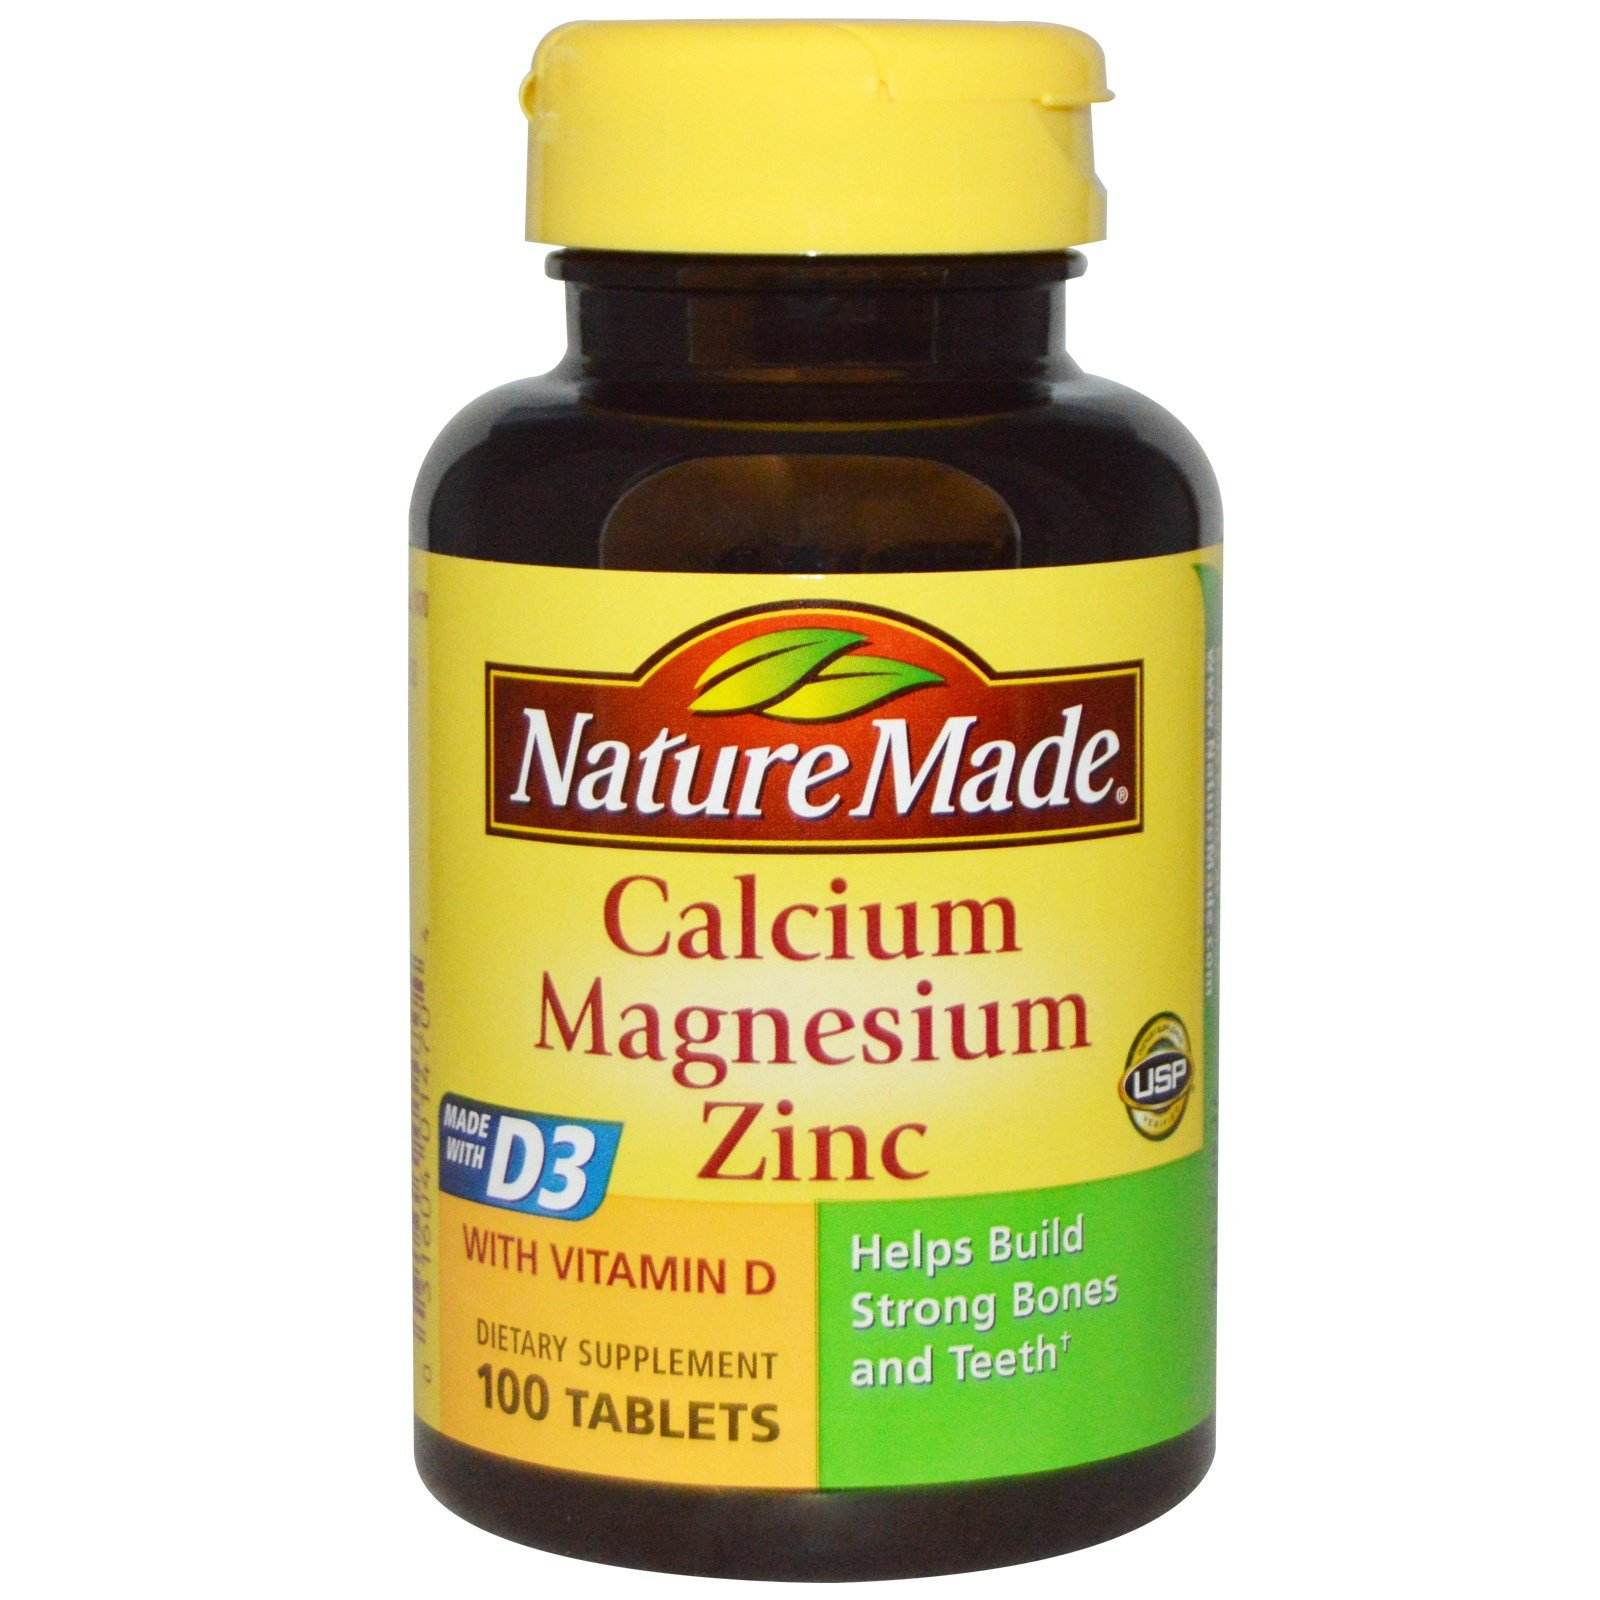 Nature Made Calcium Magnesium Zinc, 100 tablets, With Vitamin D, Helps Support Strong Bones and Teeth